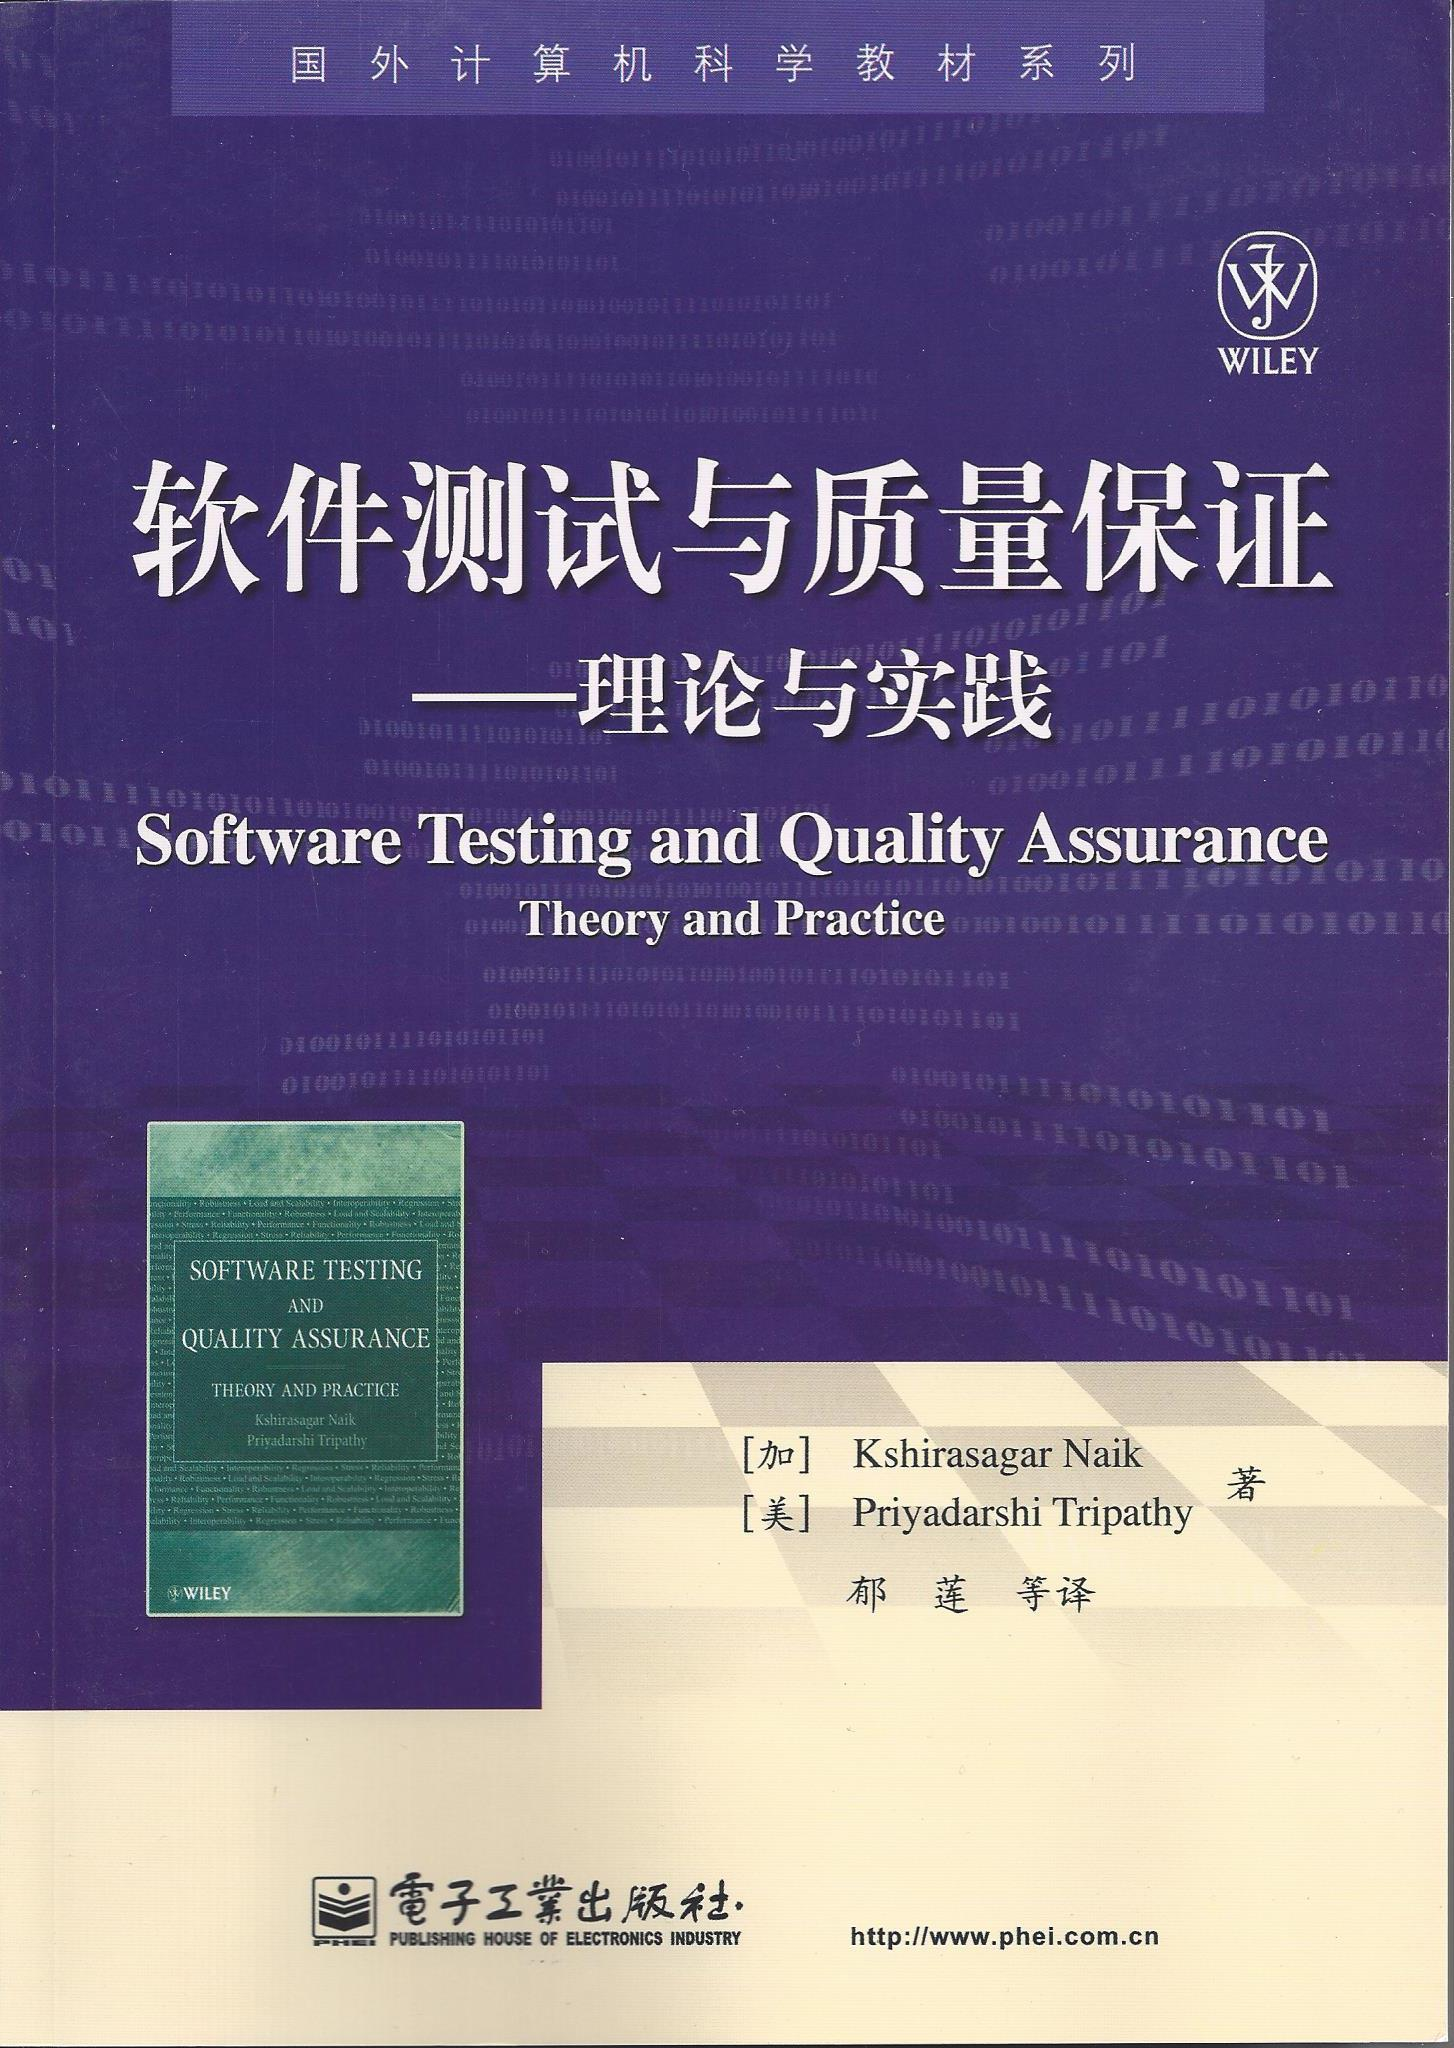 Software Testing and Quality Assurance Book Naik